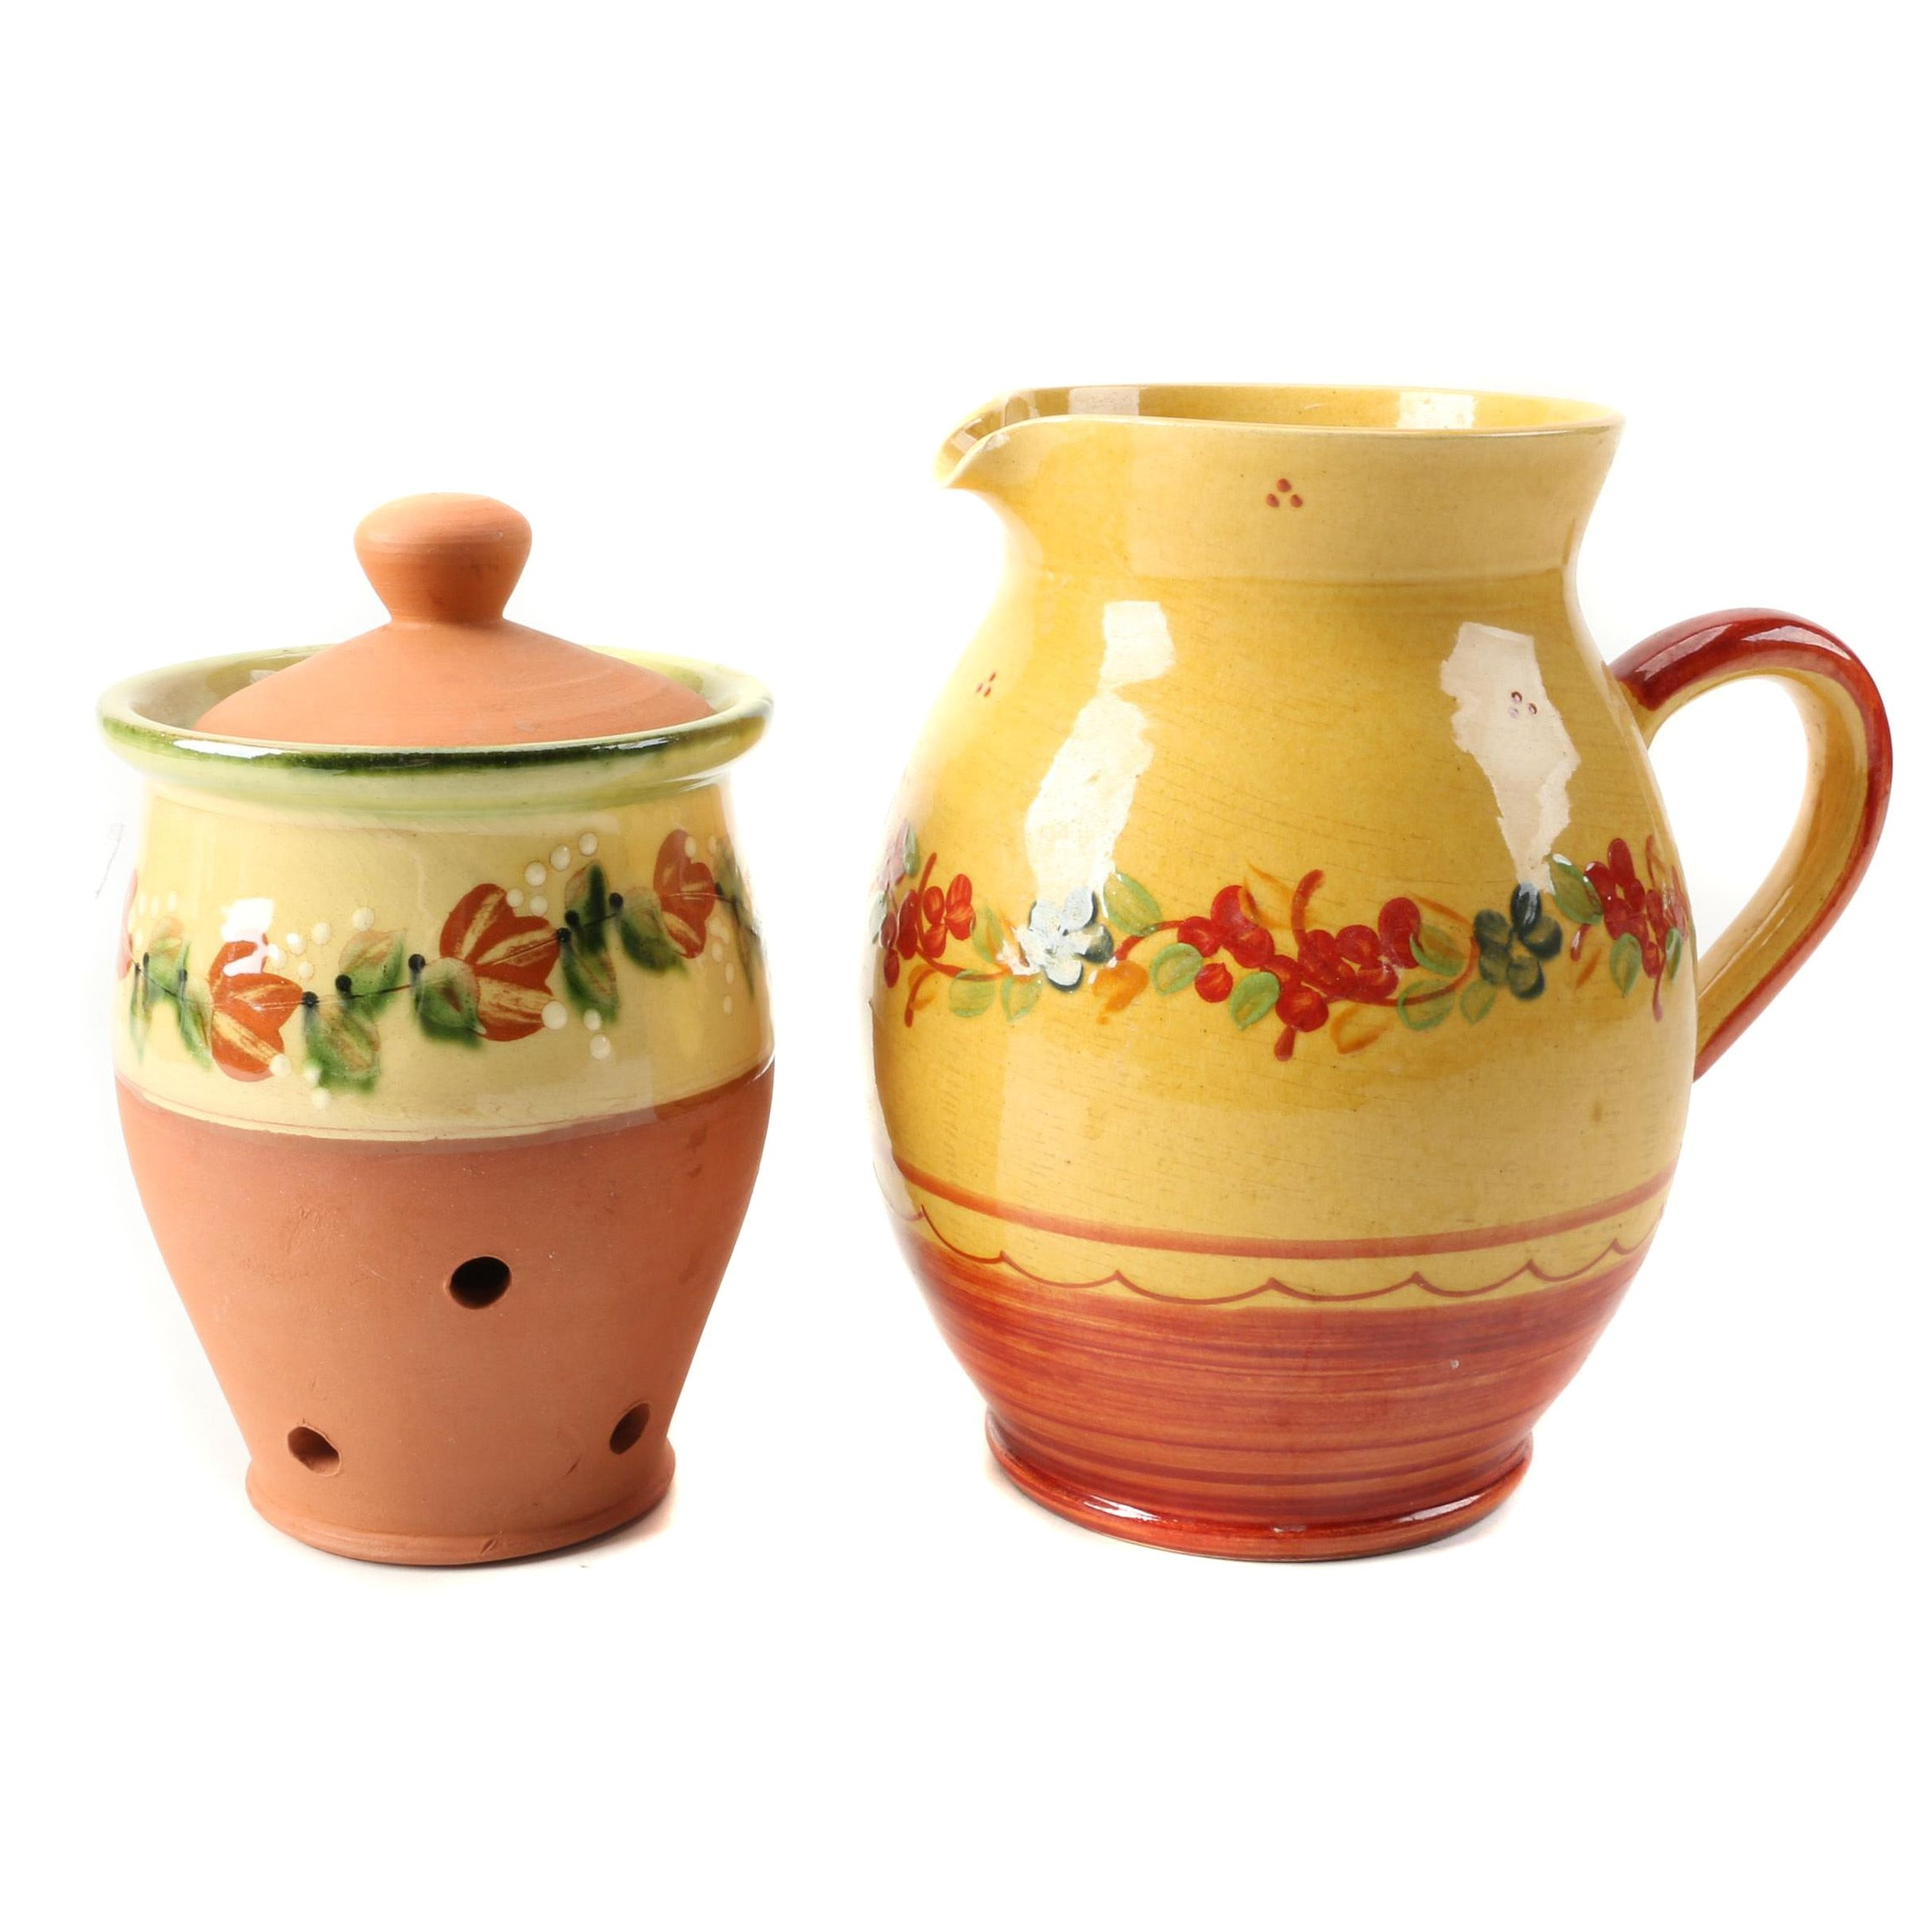 French Terre è Provence Earthenware Pitcher and Lidded Garlic Jar